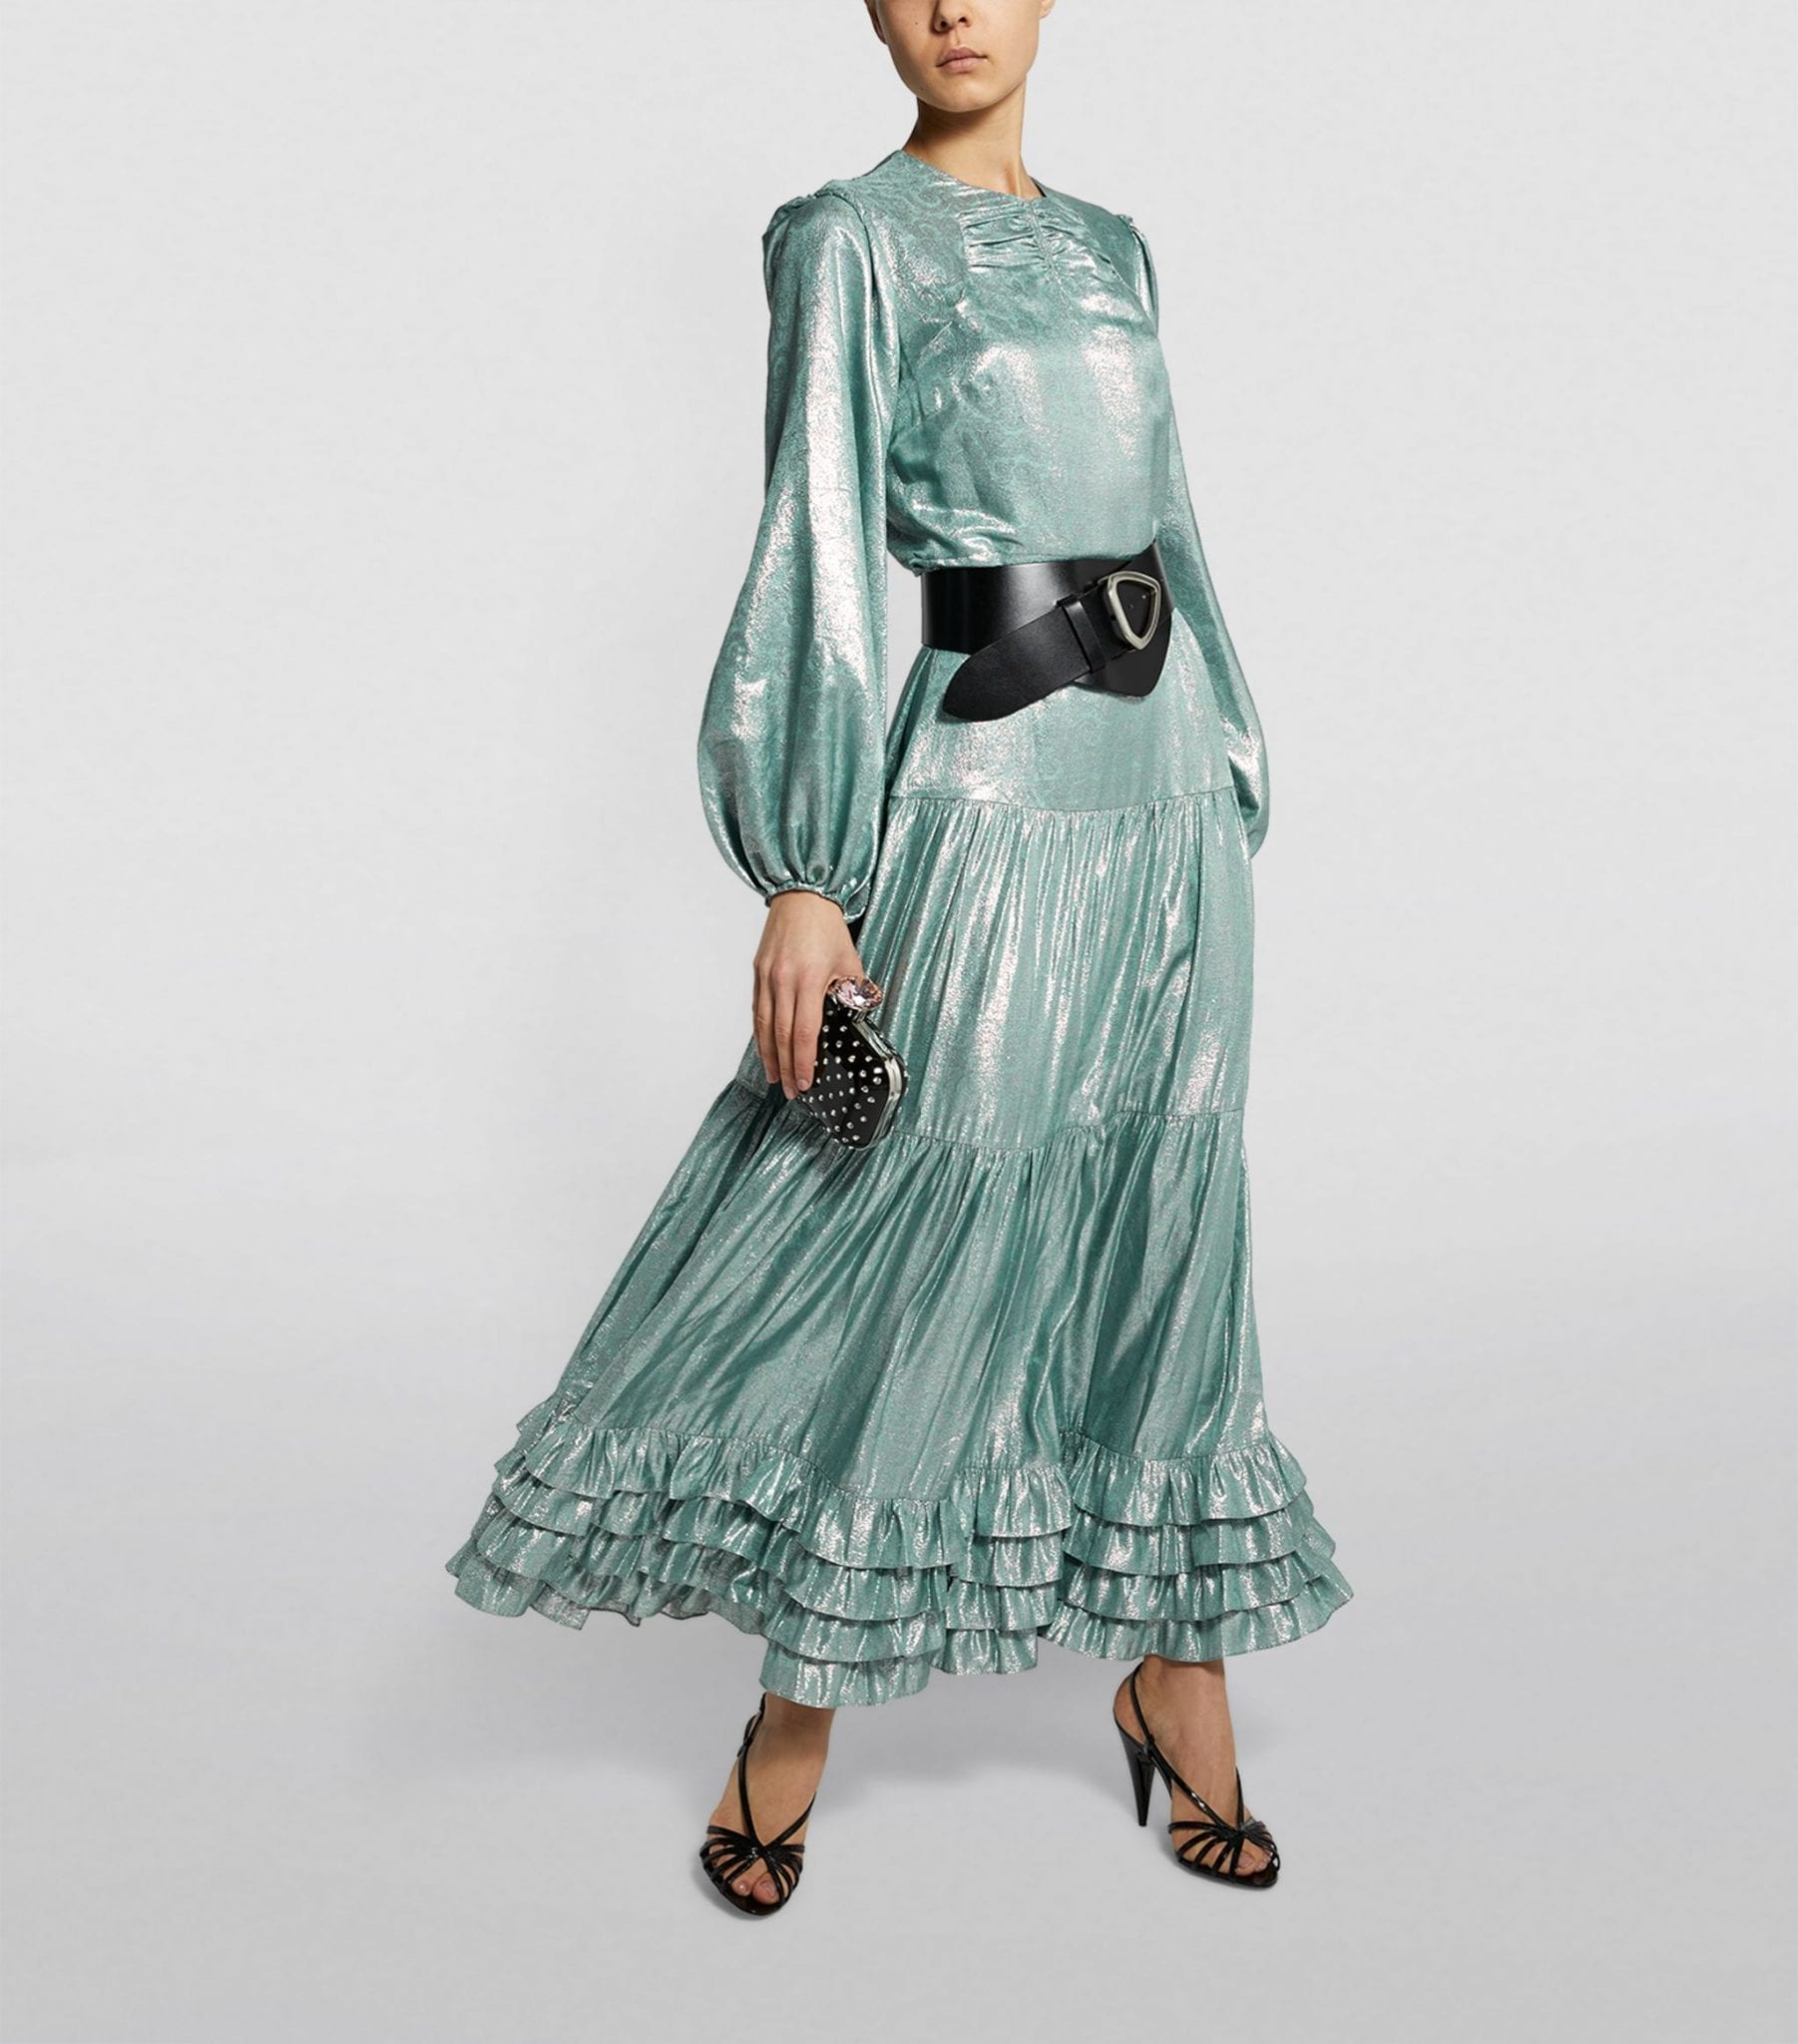 ERDEM Lurex Lucine Maxi Dress